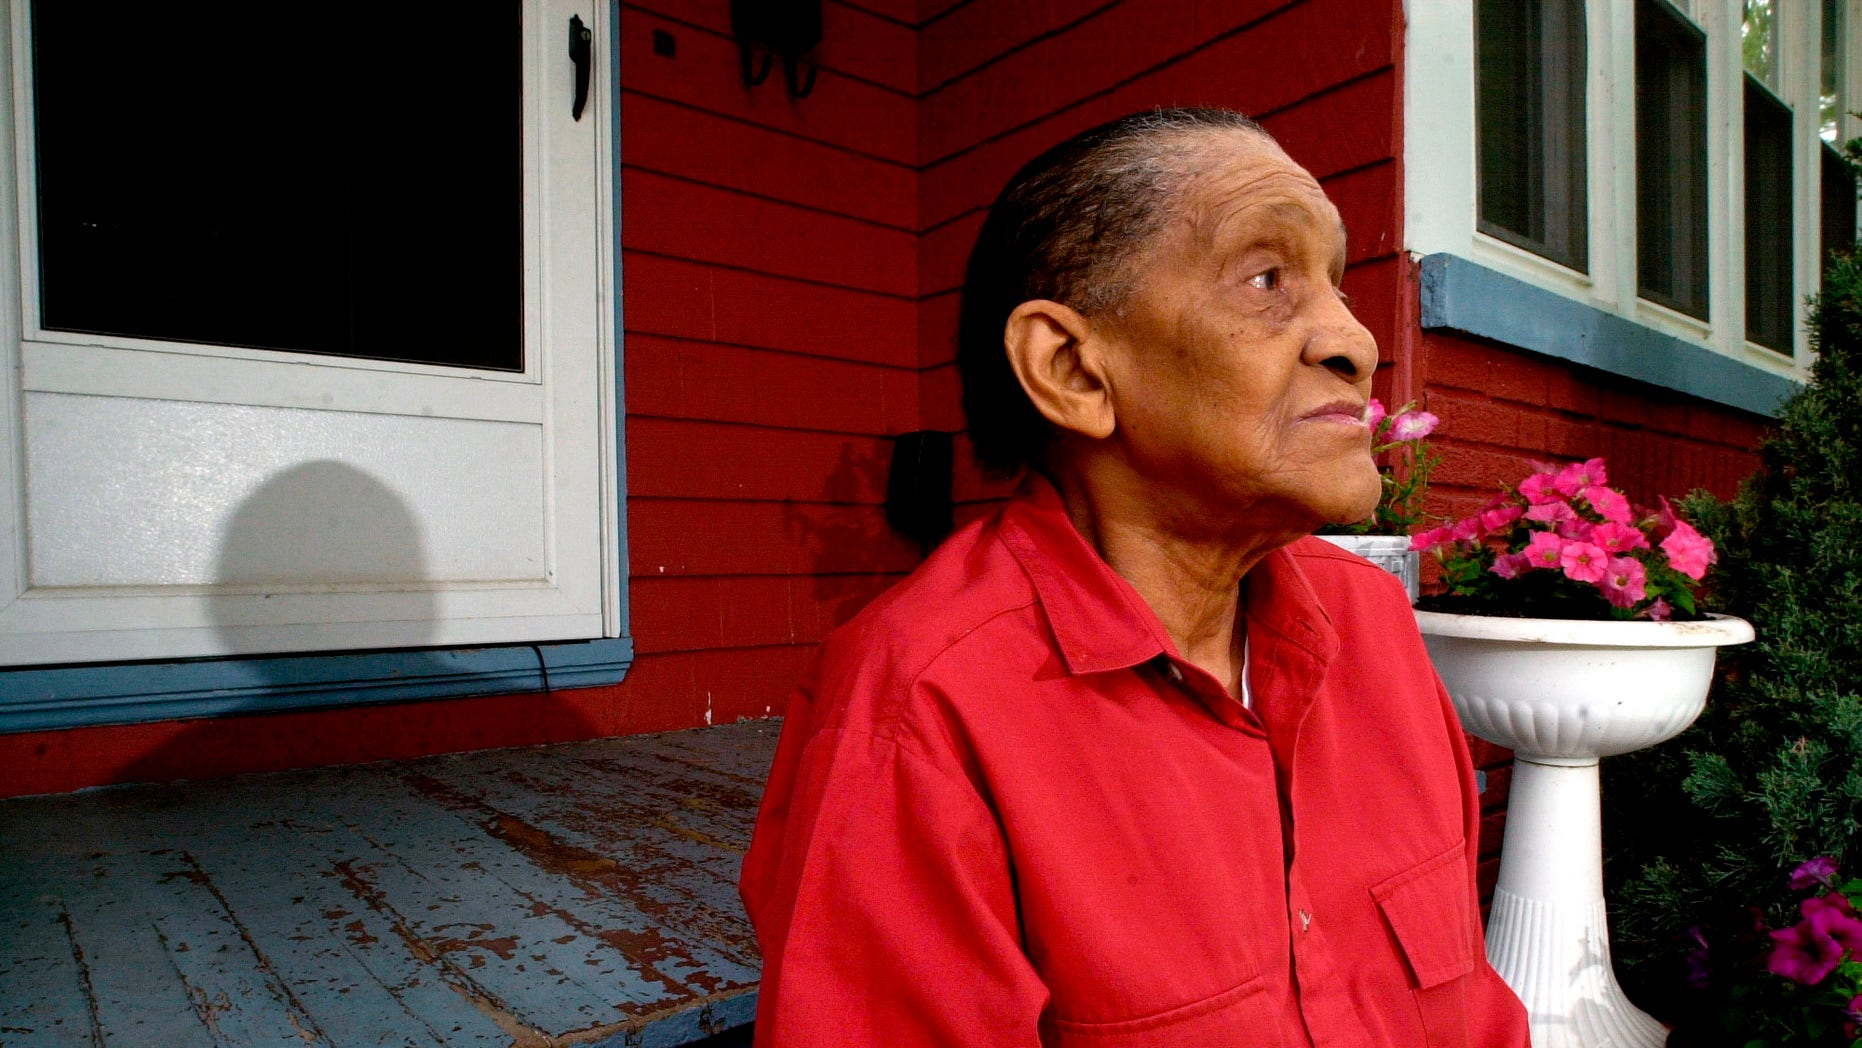 June 18, 2004. Jazz legend Jimmy Scott poses for a portrait at his home in Euclid, Ohio.